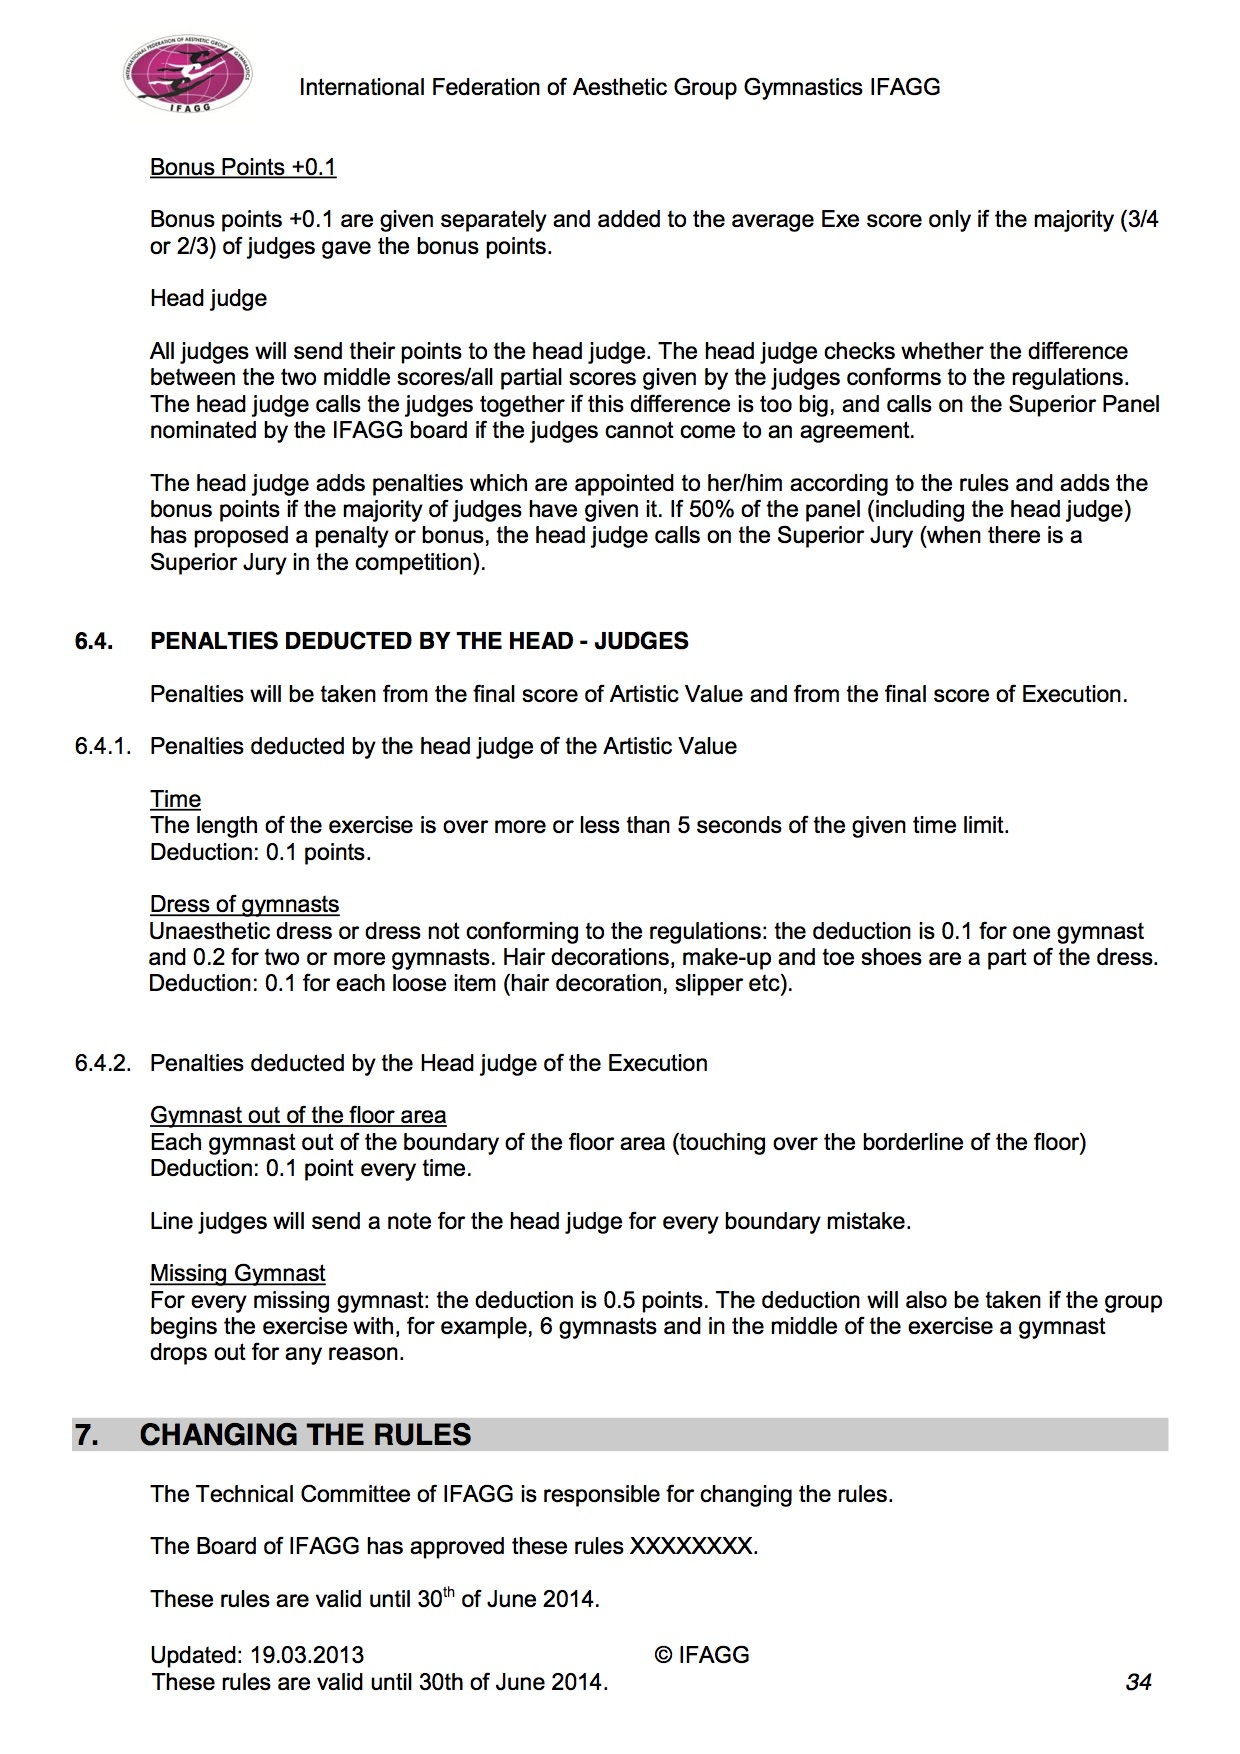 IFAGG Competition rules34.jpg